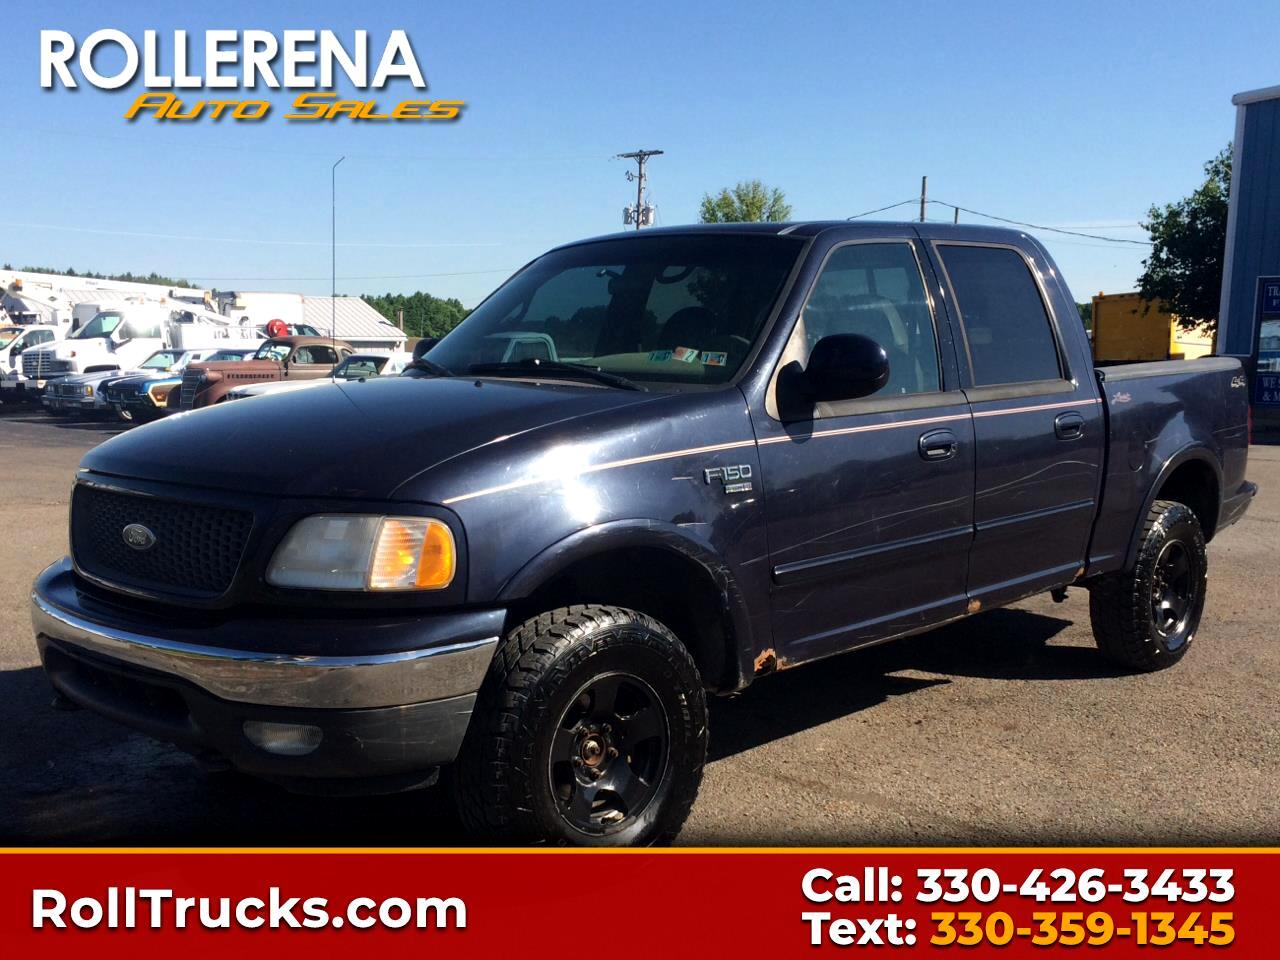 2001 Ford F-150 Lariat 4WD